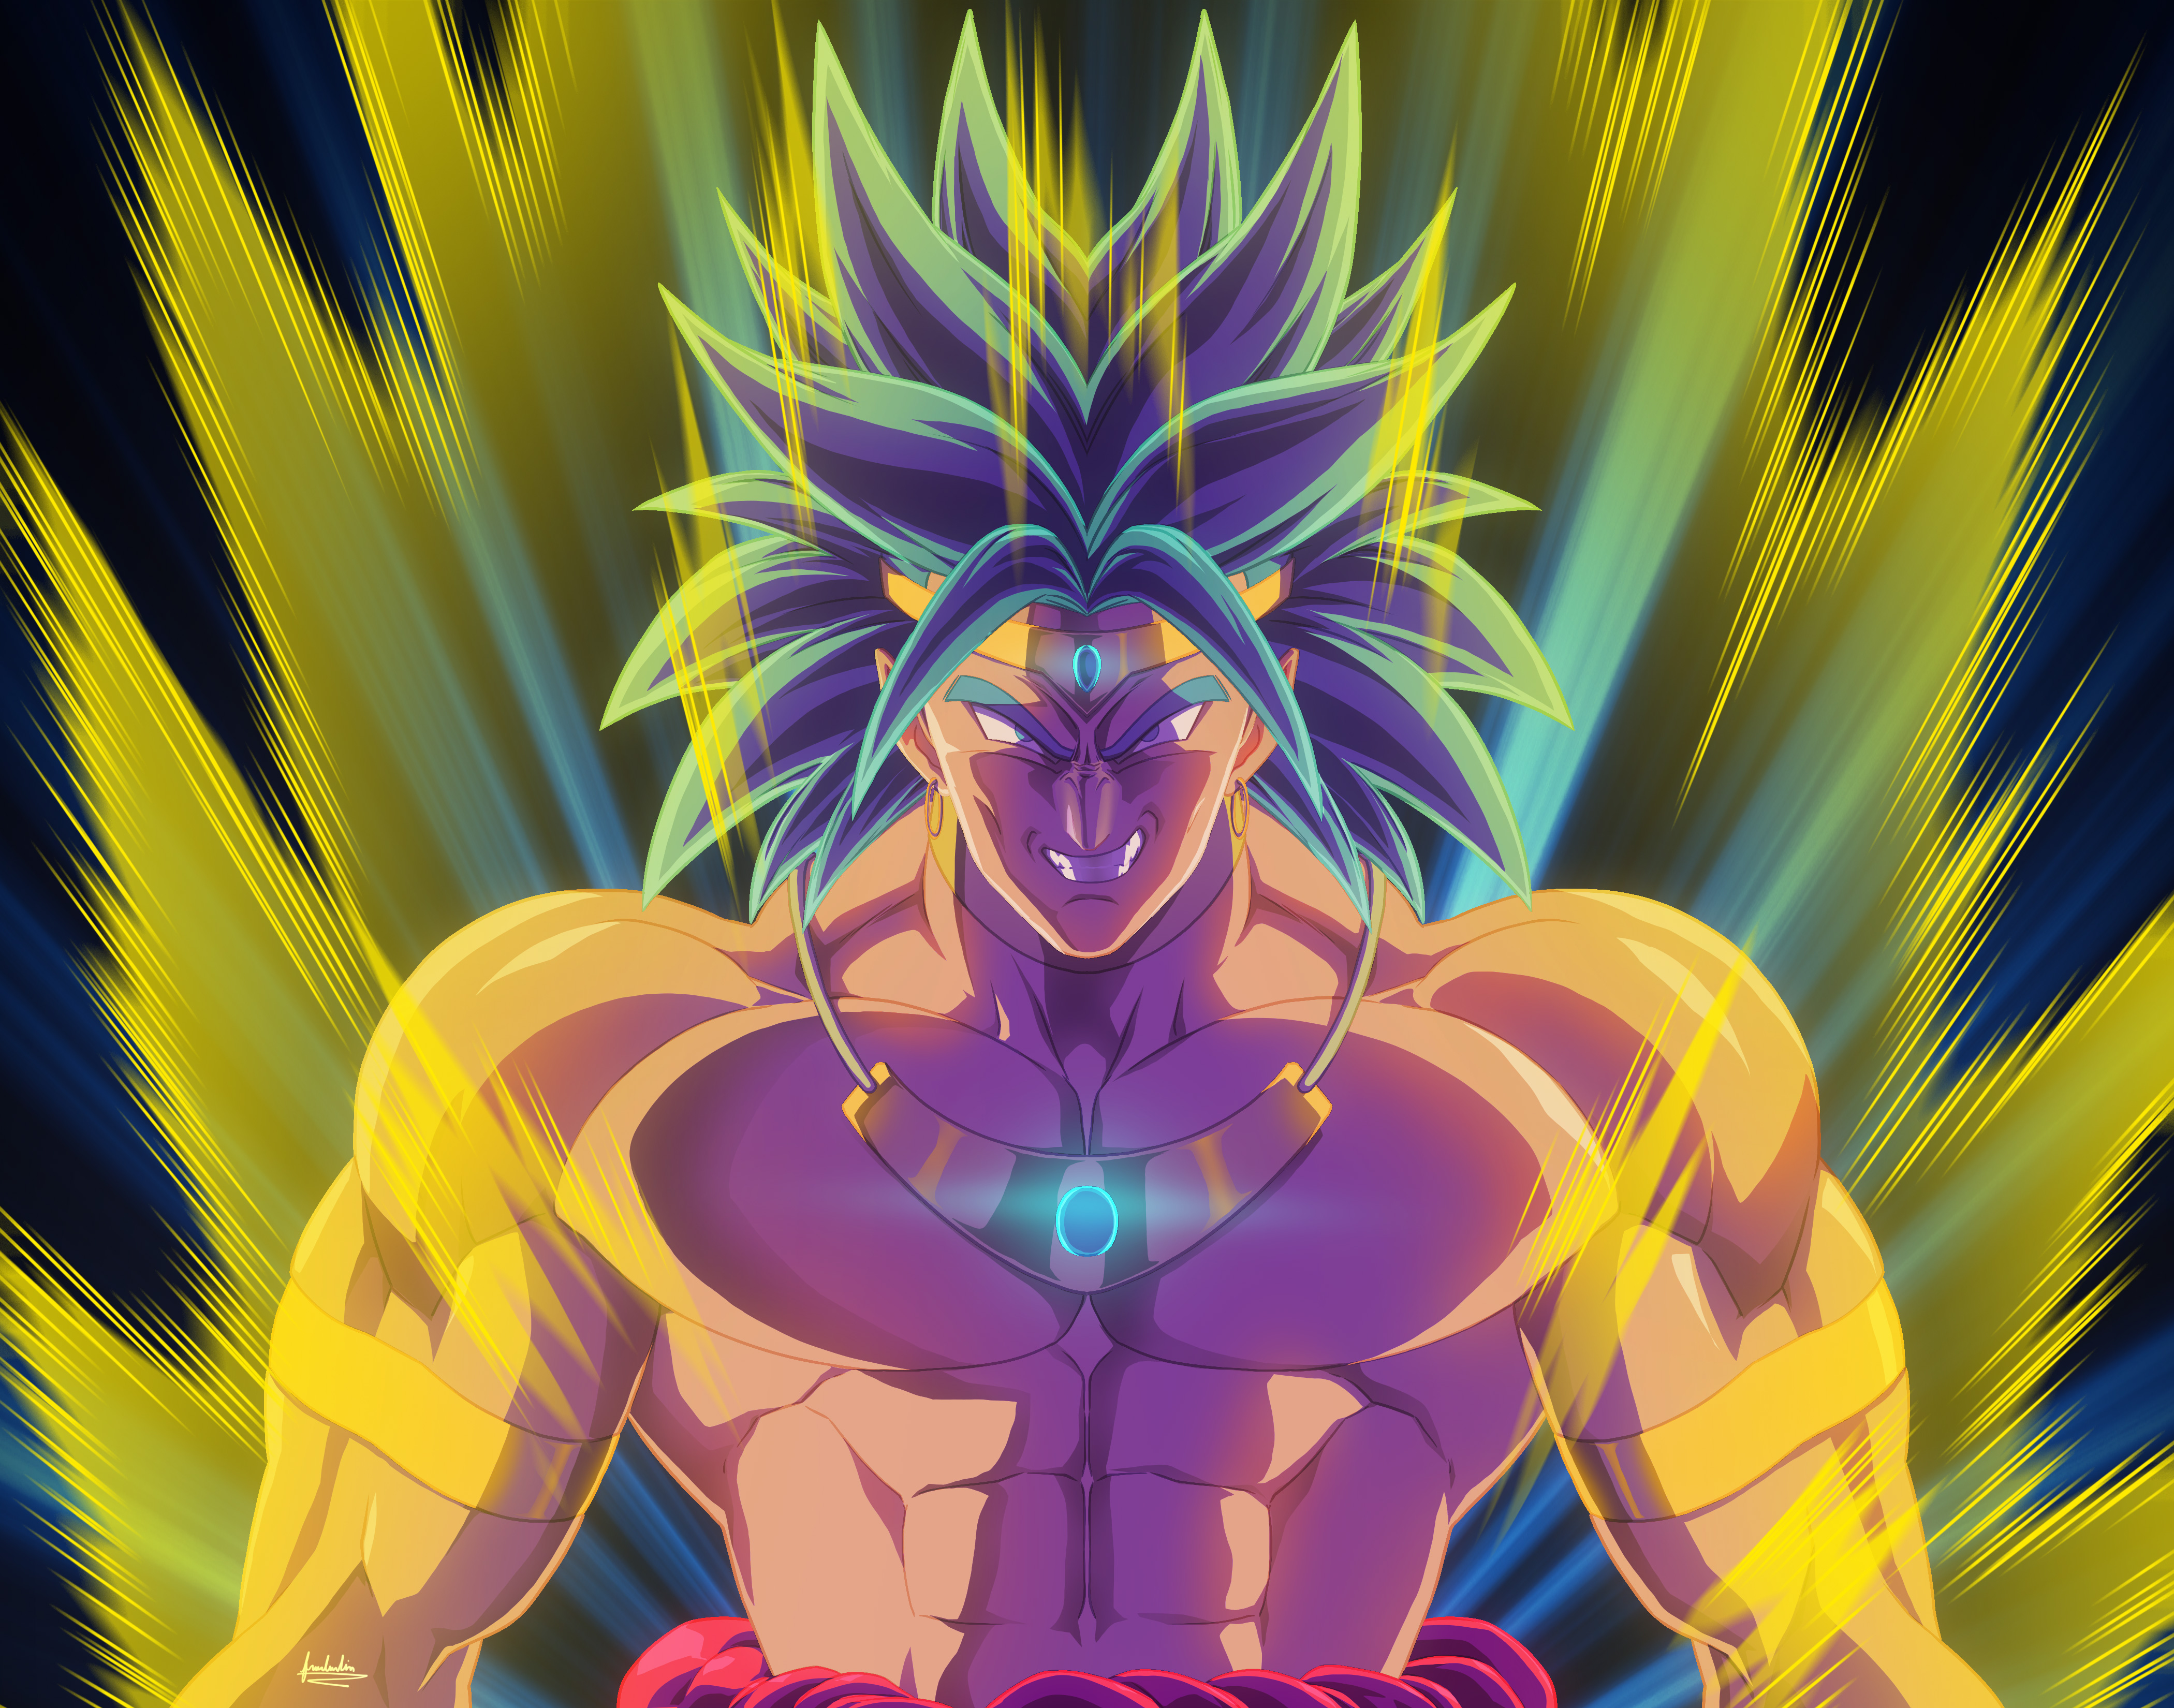 Broly Dragon Ball Z Anime Artwork Hd Anime 4k Wallpapers Images Backgrounds Photos And Pictures